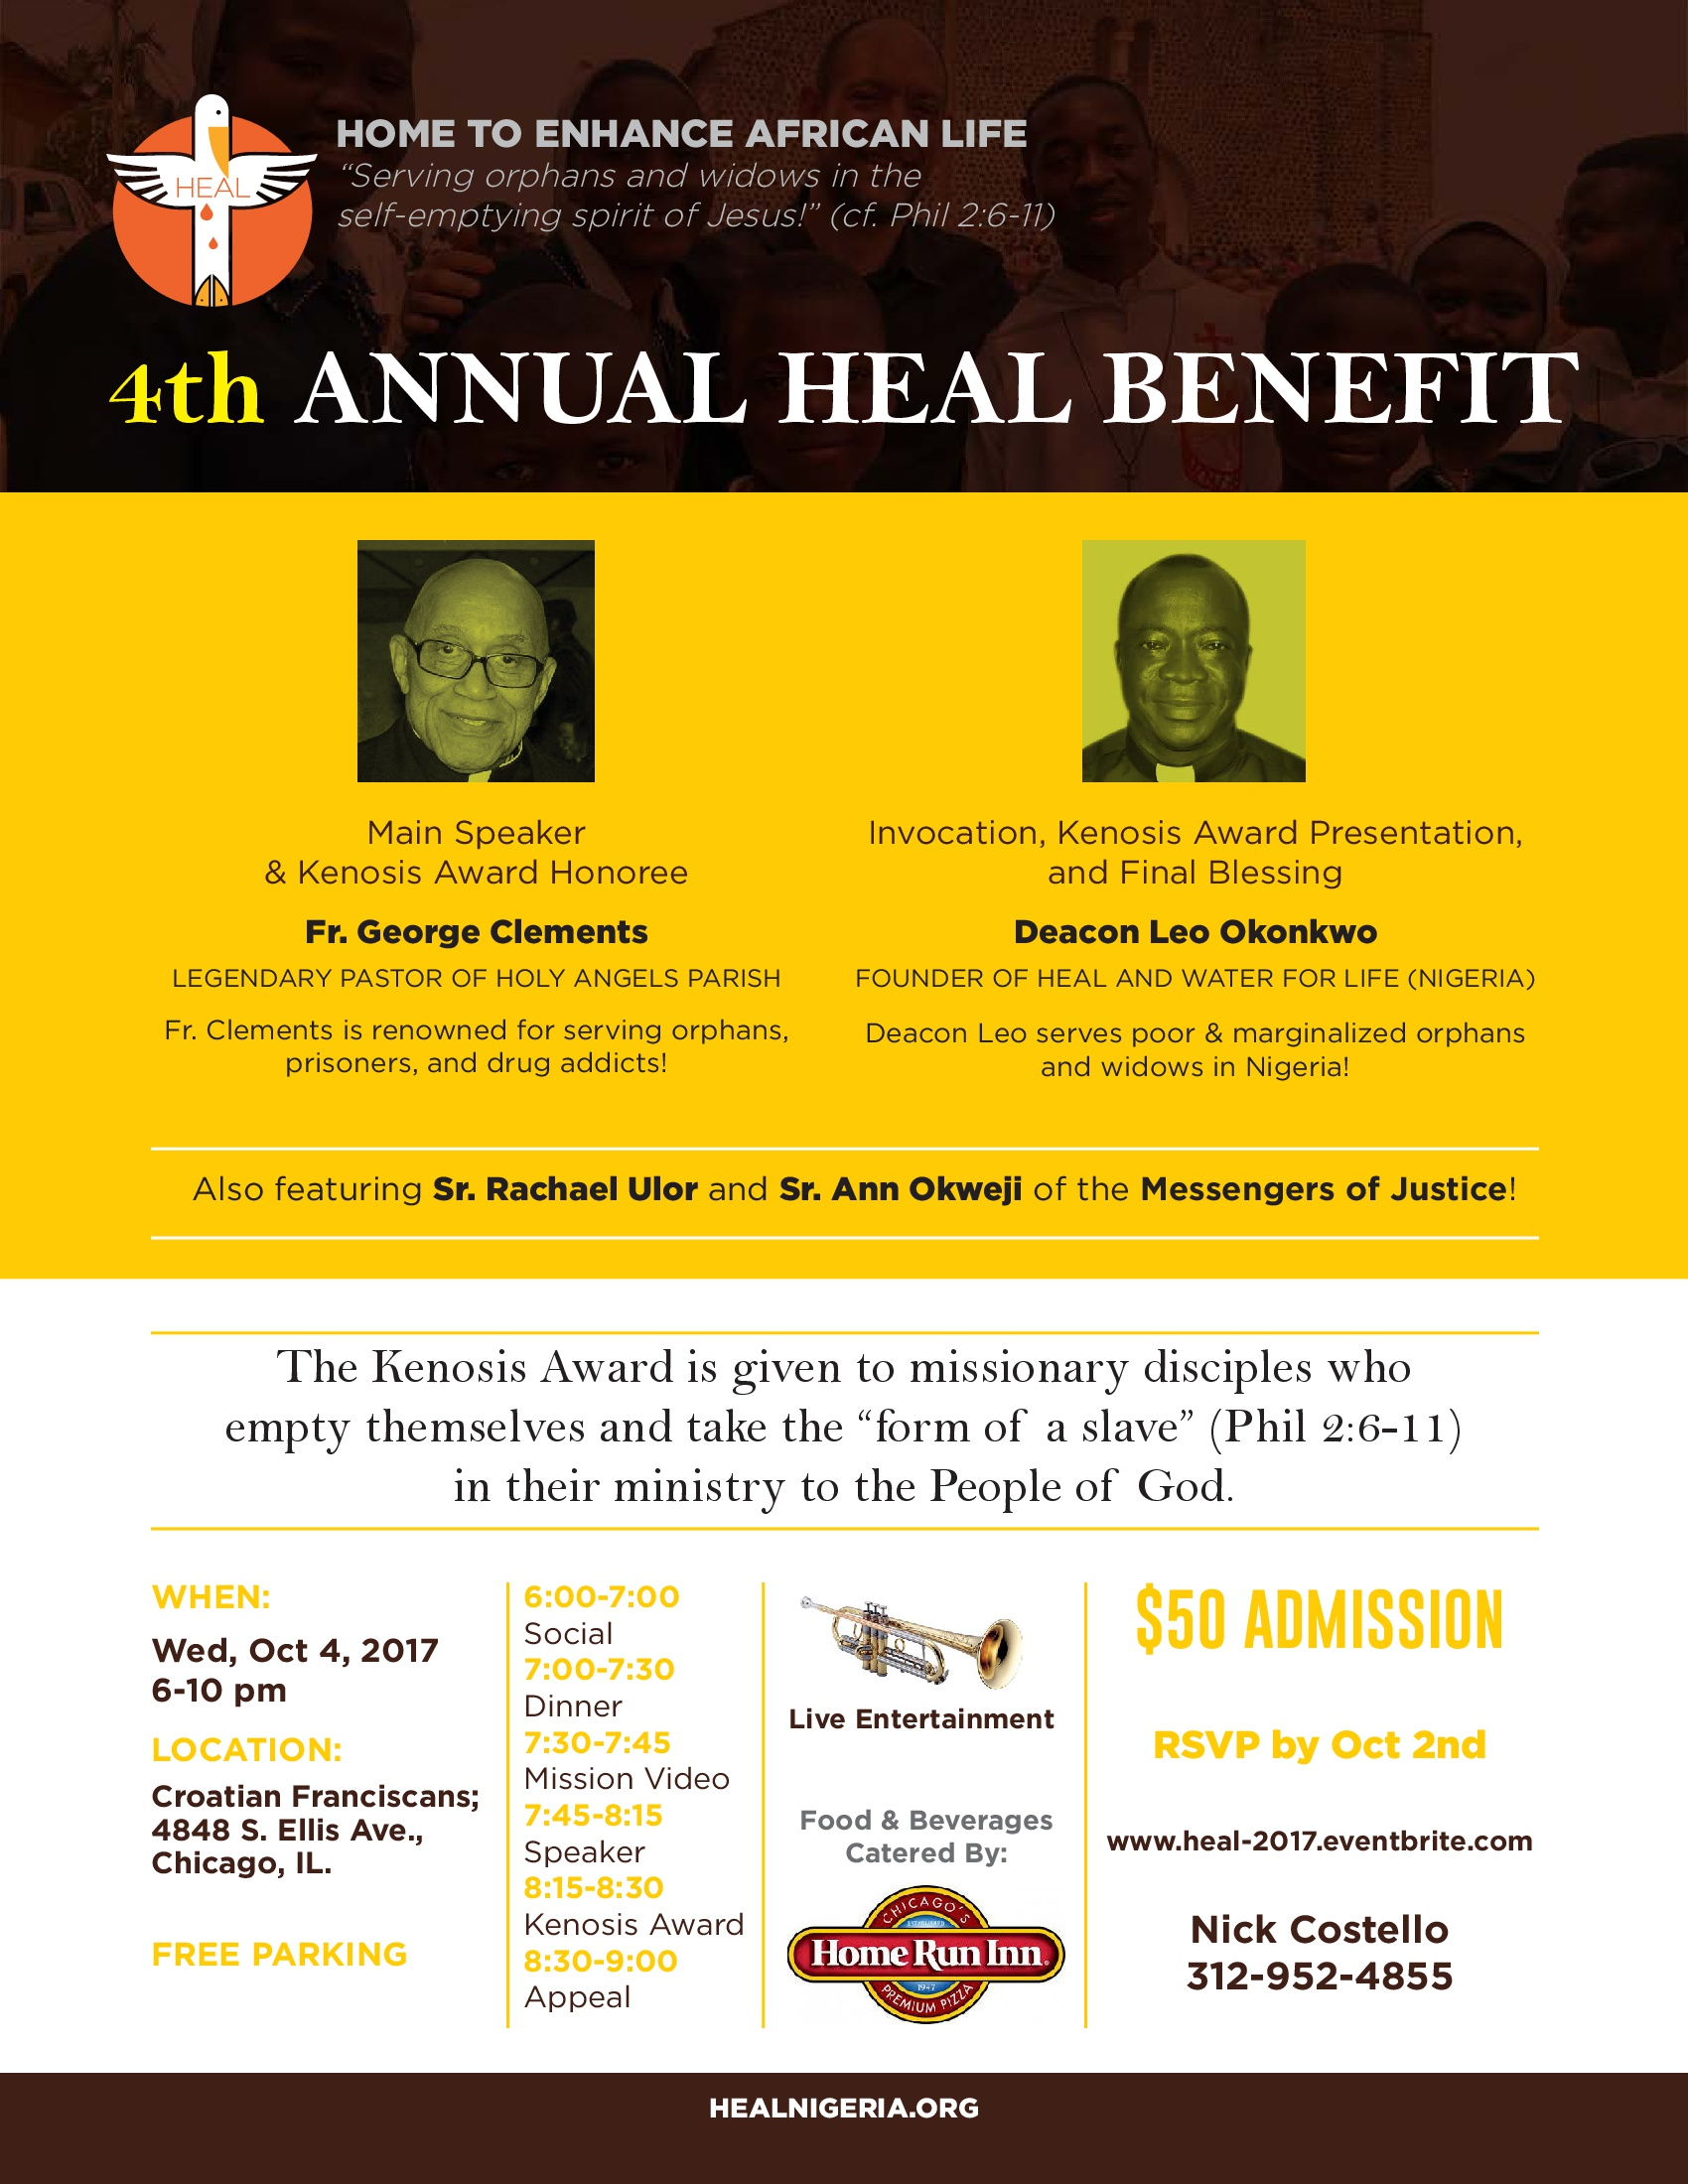 2016 Third Annual HEAL Benefit